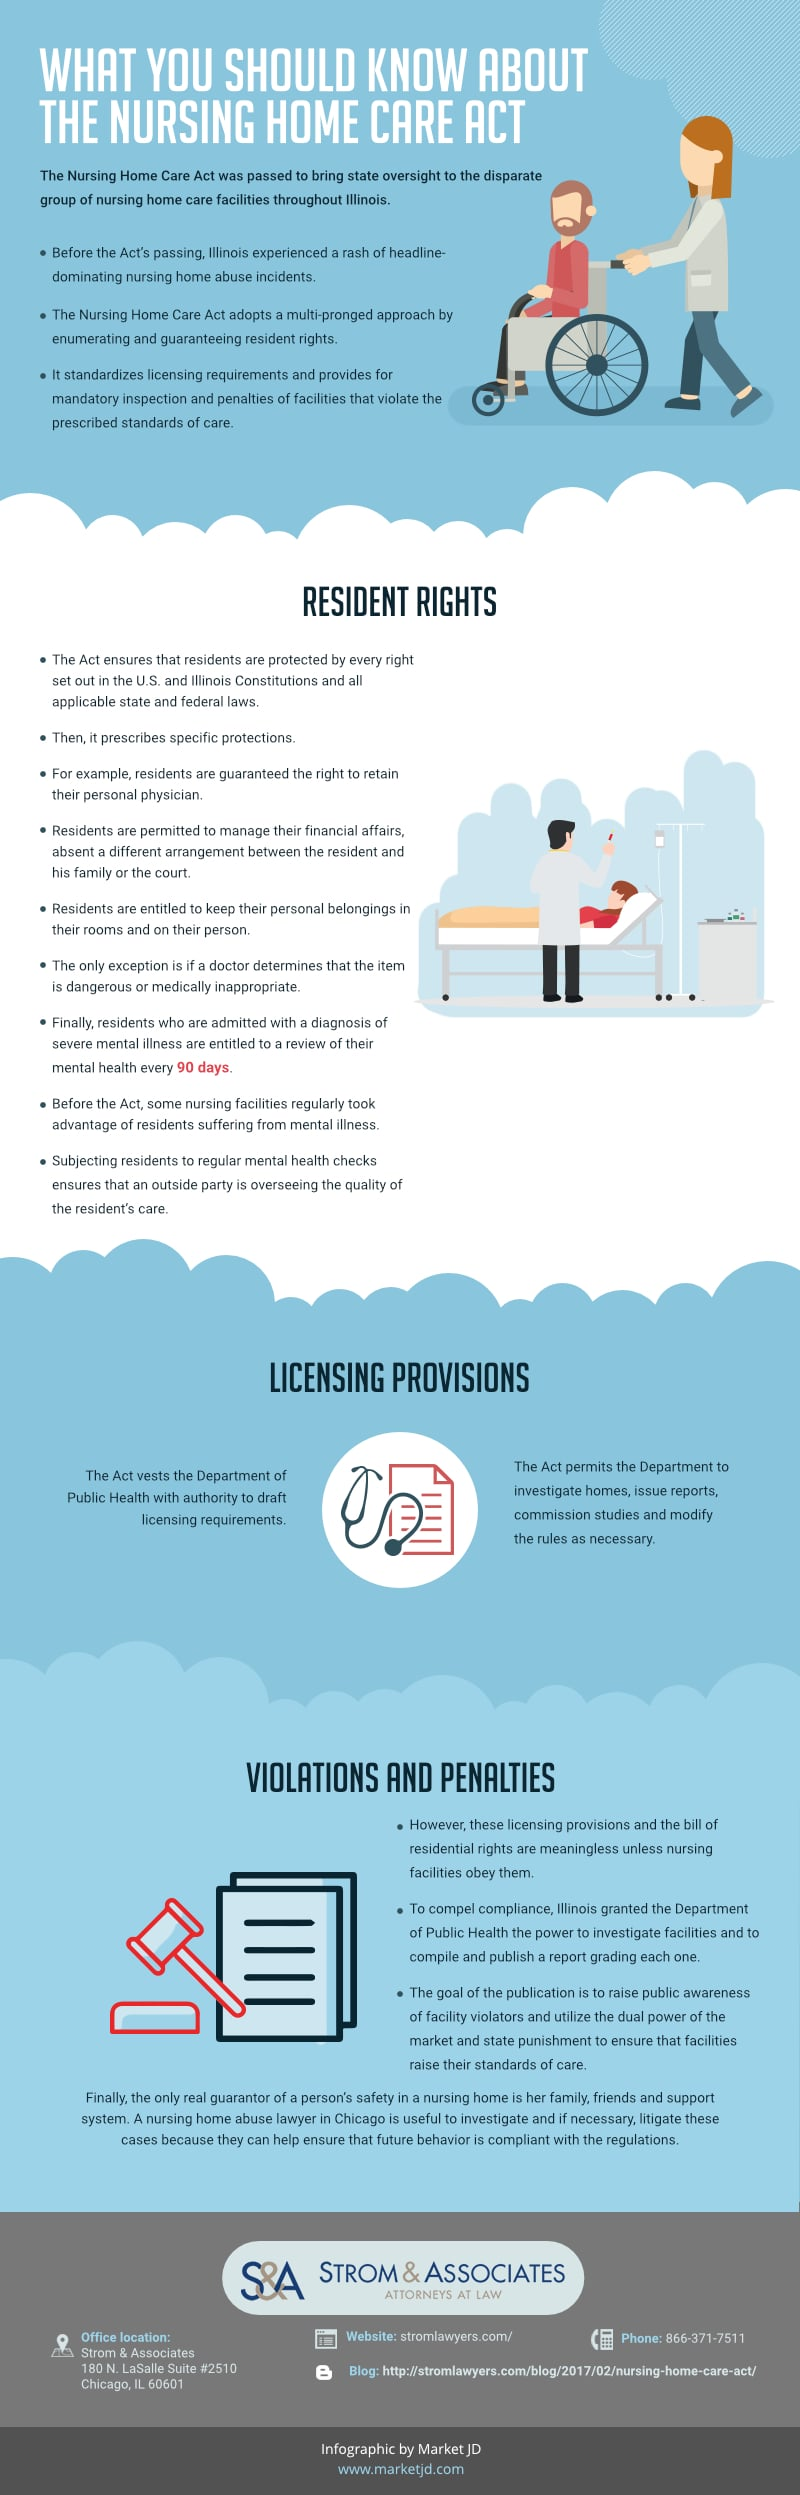 Nursing home care act infographic